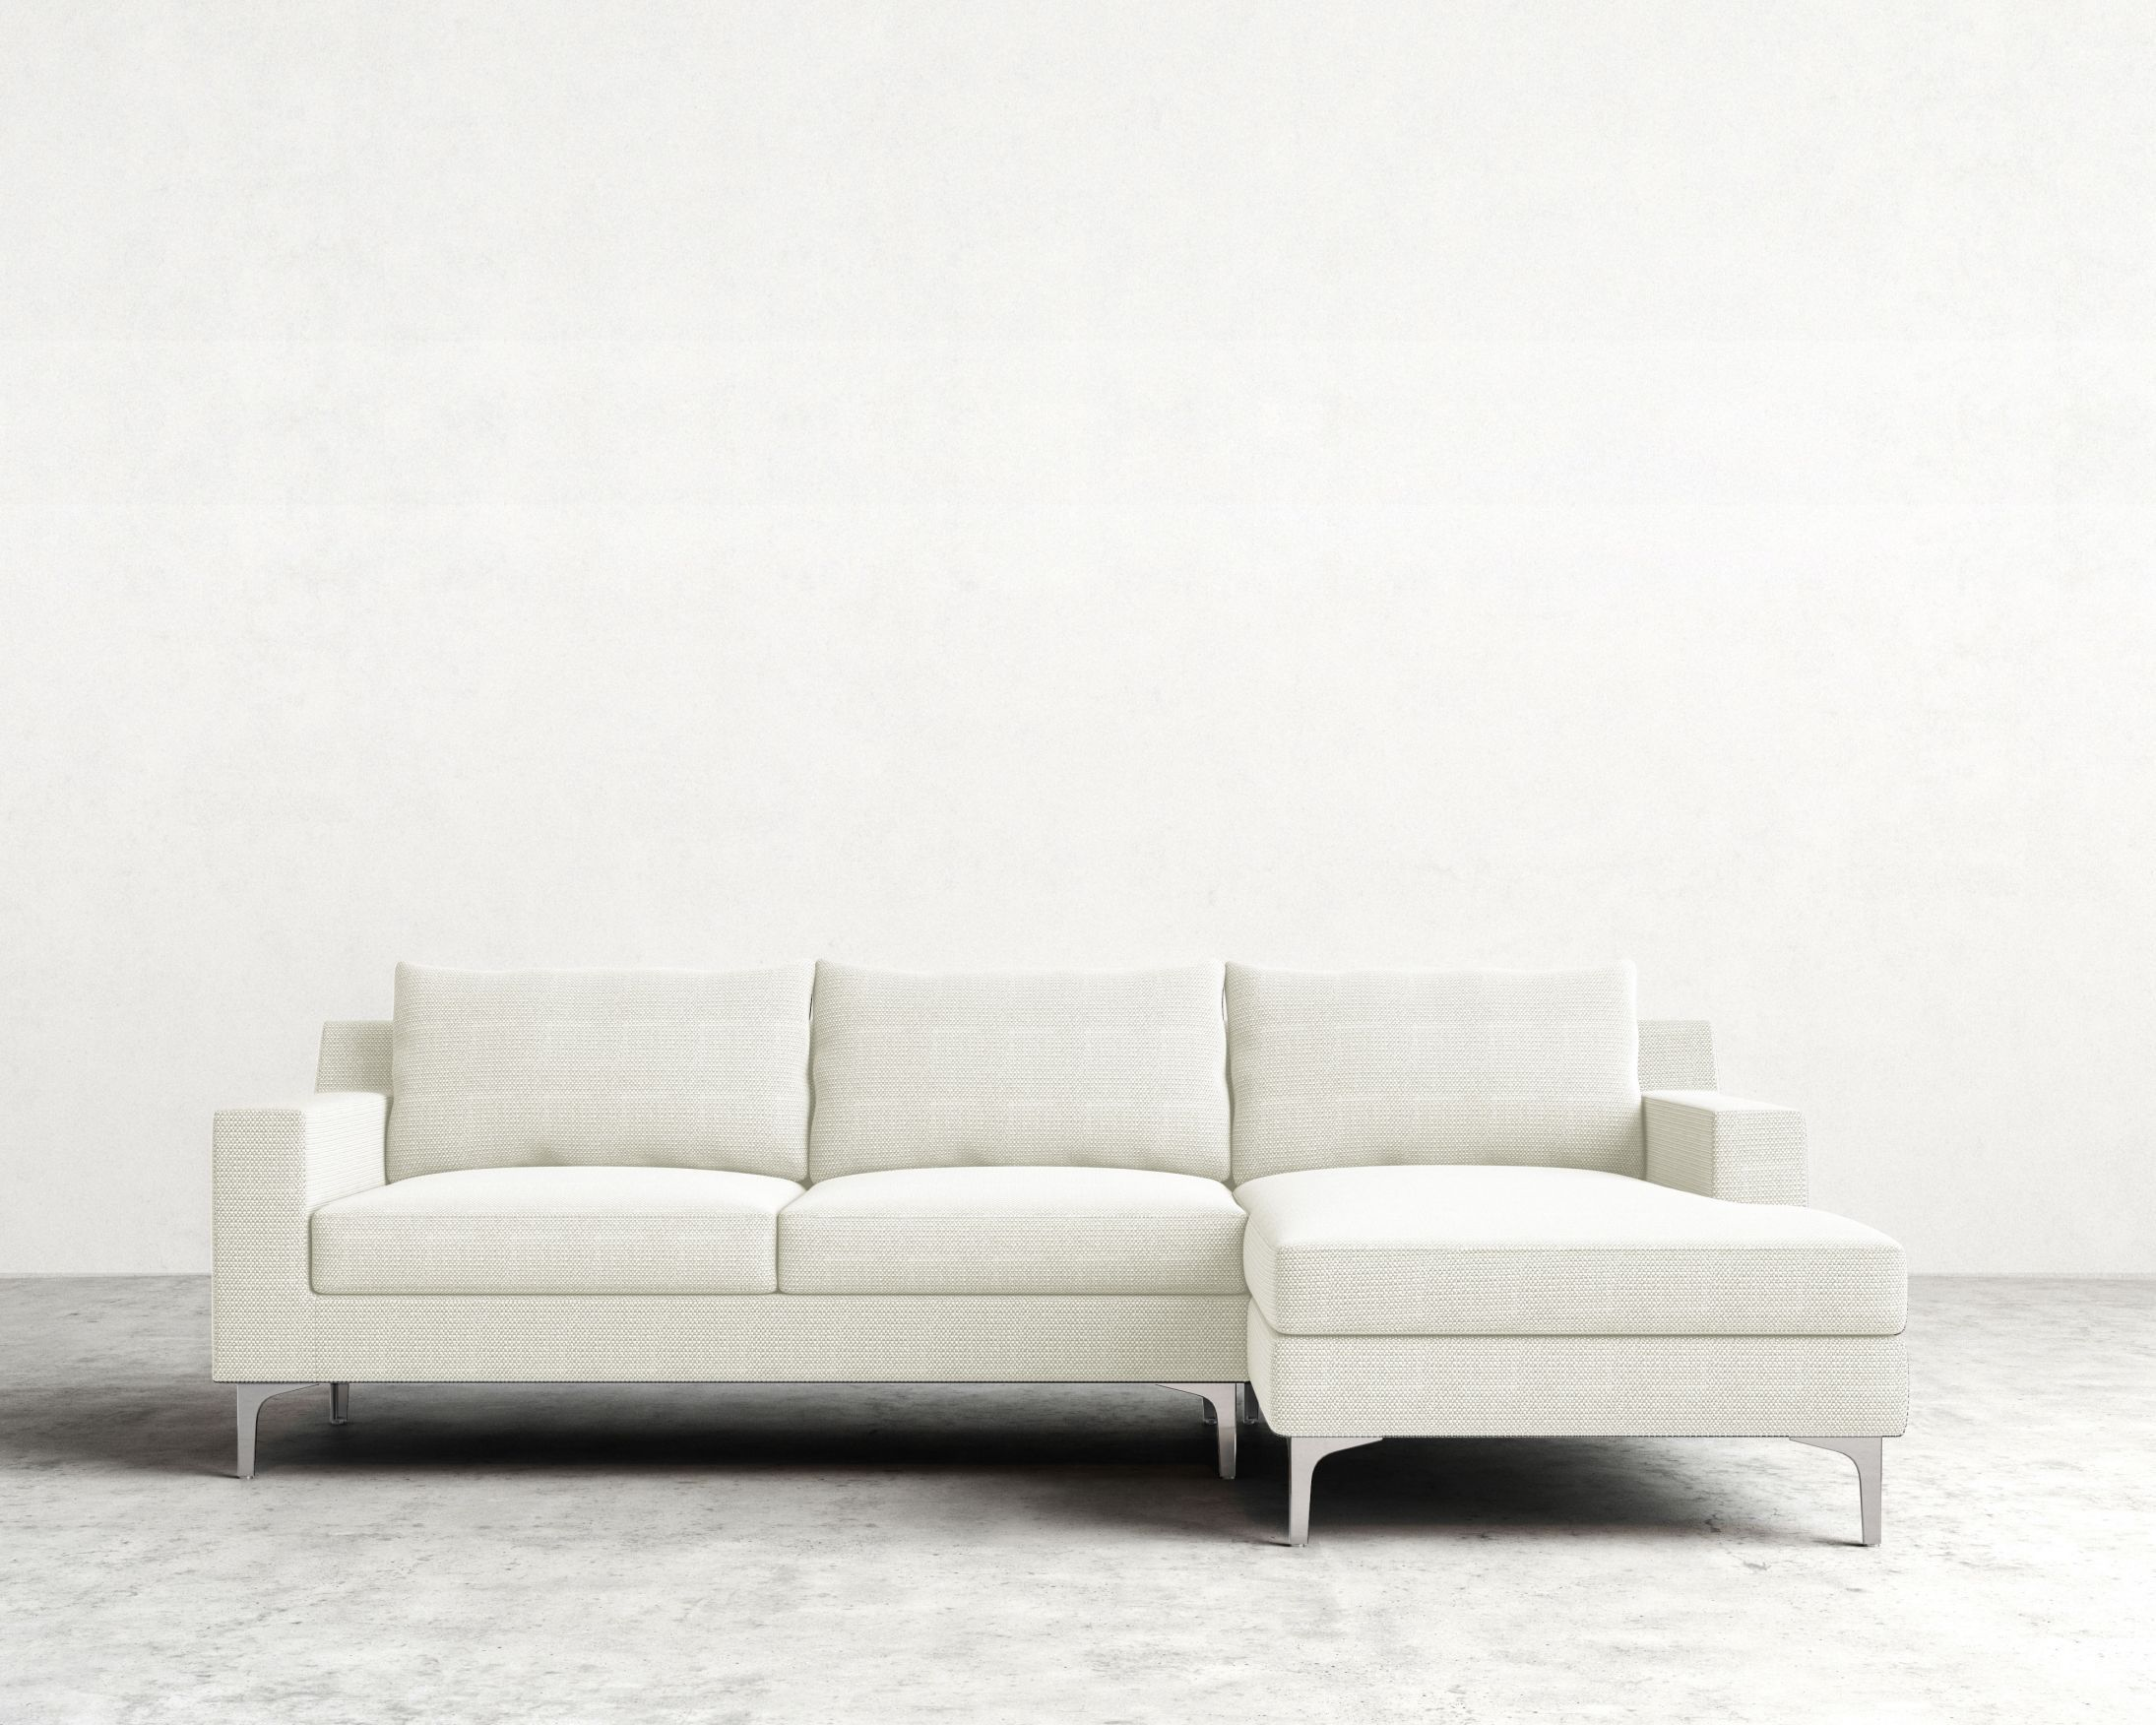 35 8 d seat 23 sophia sofa sectional modern sofa sectional rove concepts